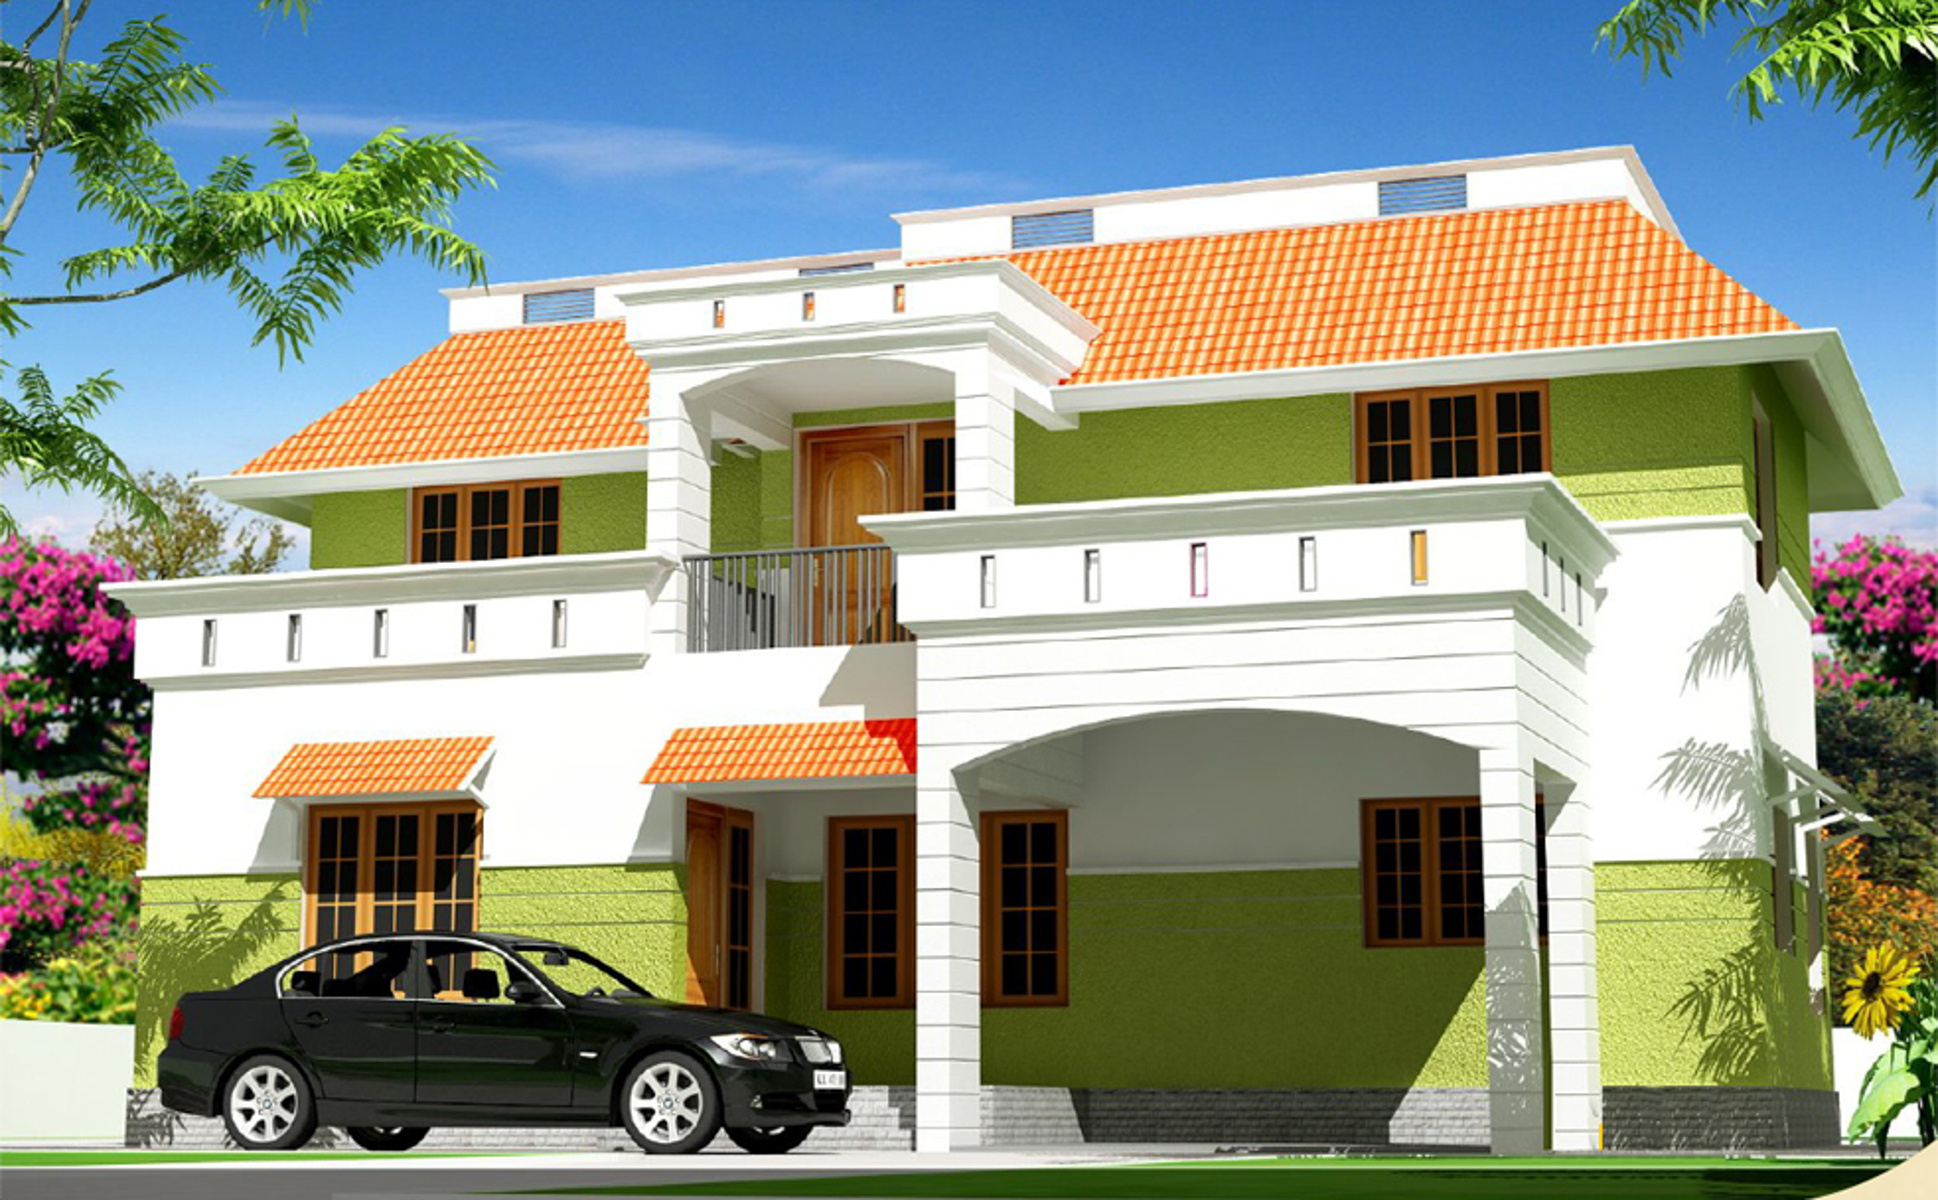 Mgf Classic Villas In Chitilappilly Thrissur Price